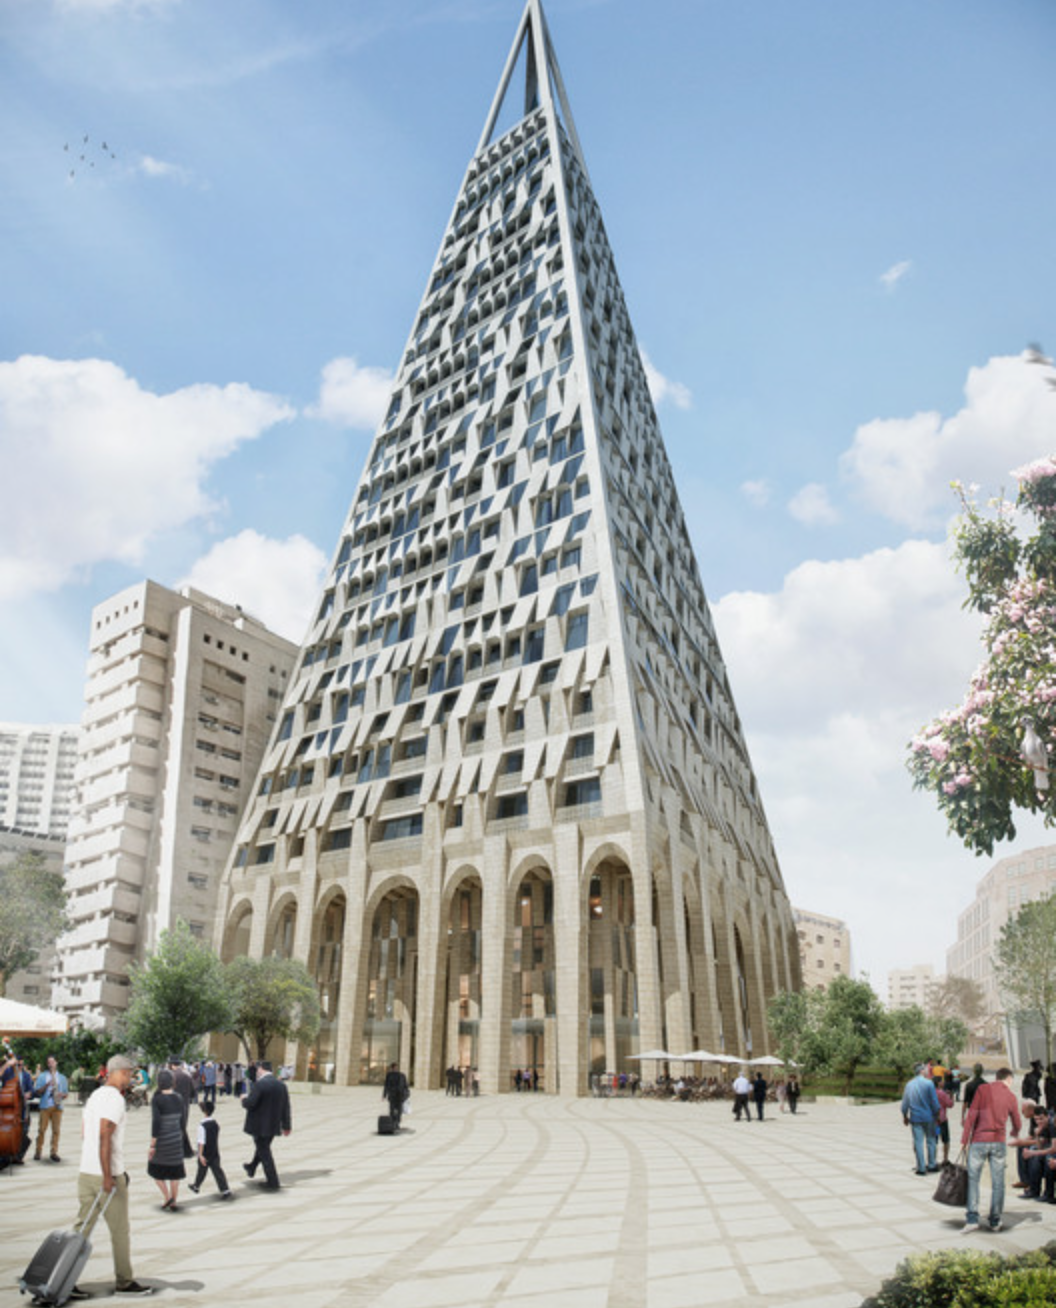 The tower will connect to a plaza, a shopping arcade and surrounding open space.